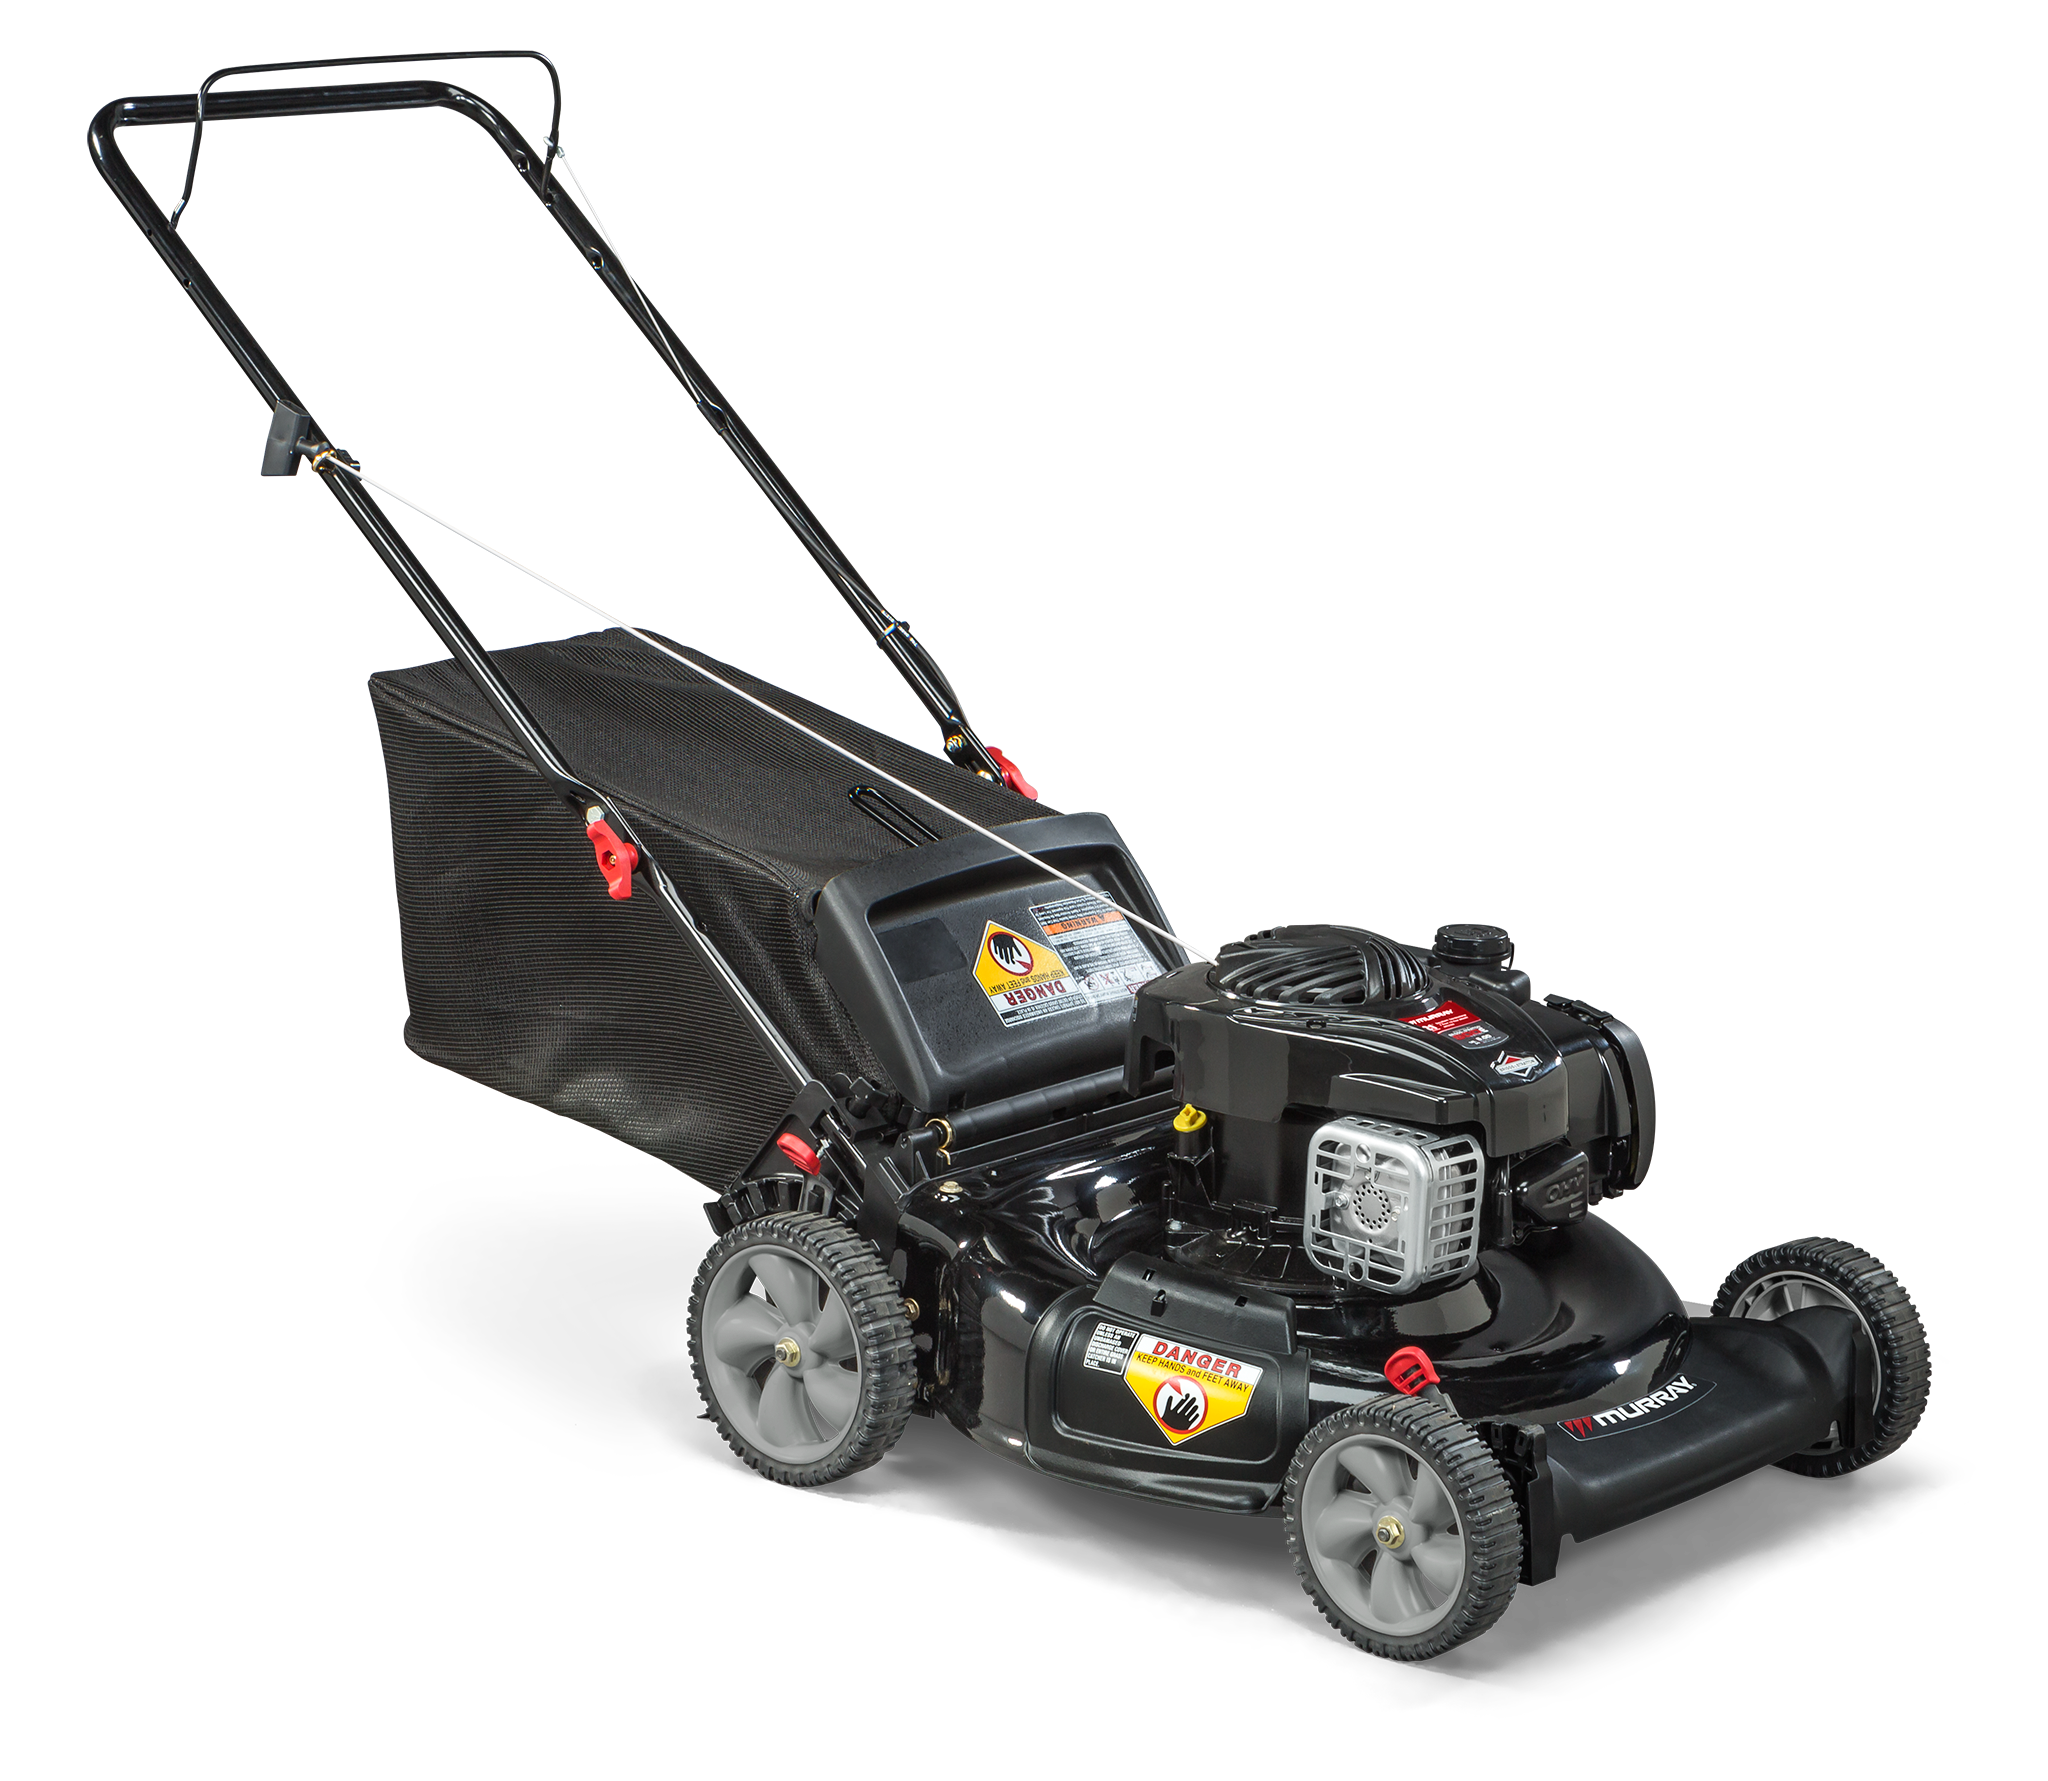 Murray 21 Gas Push Lawn Mower With Briggs And Stratton